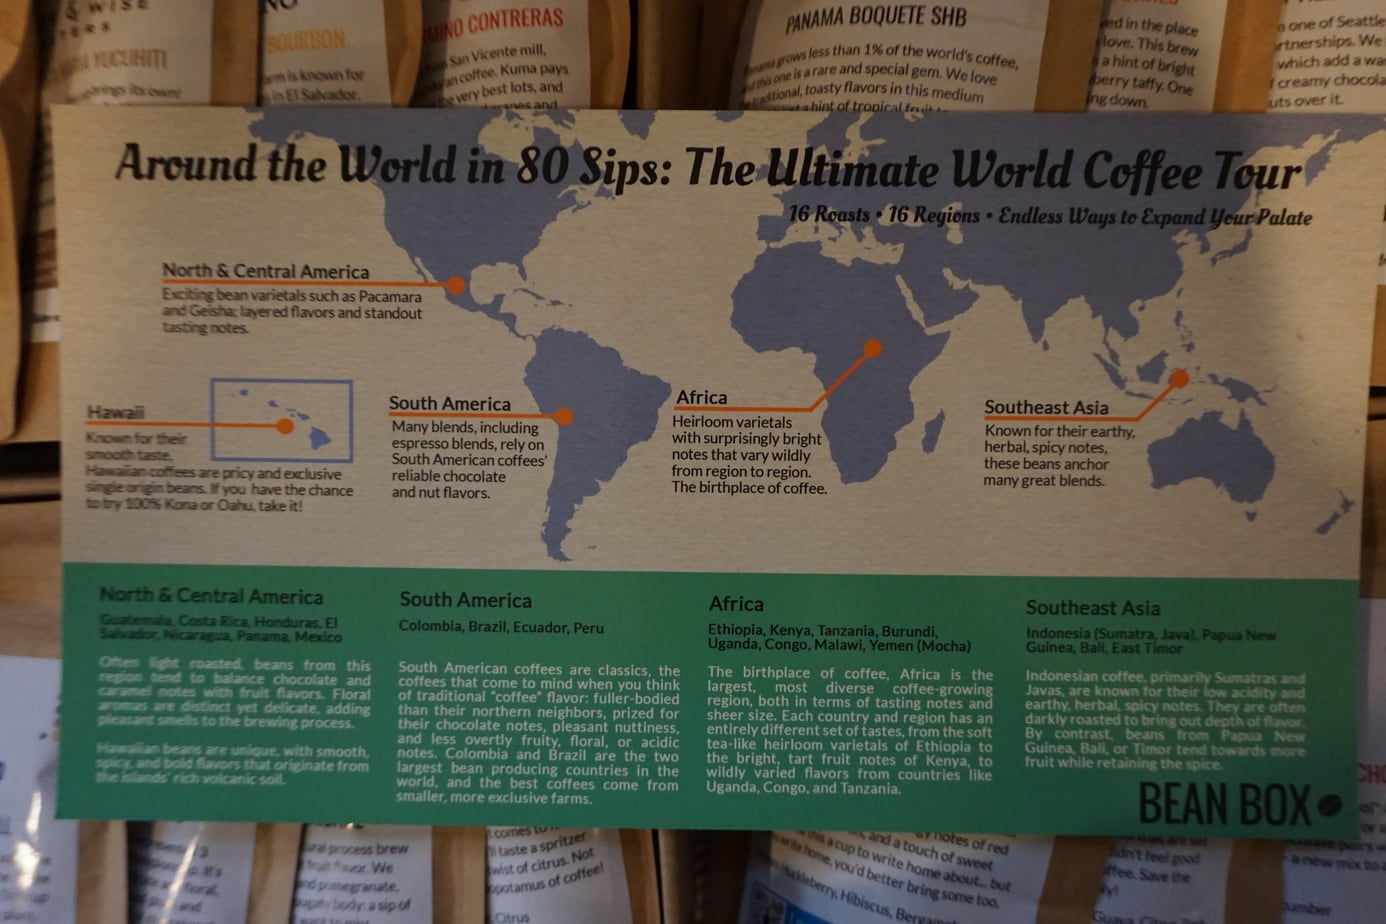 world coffee tour info sheet